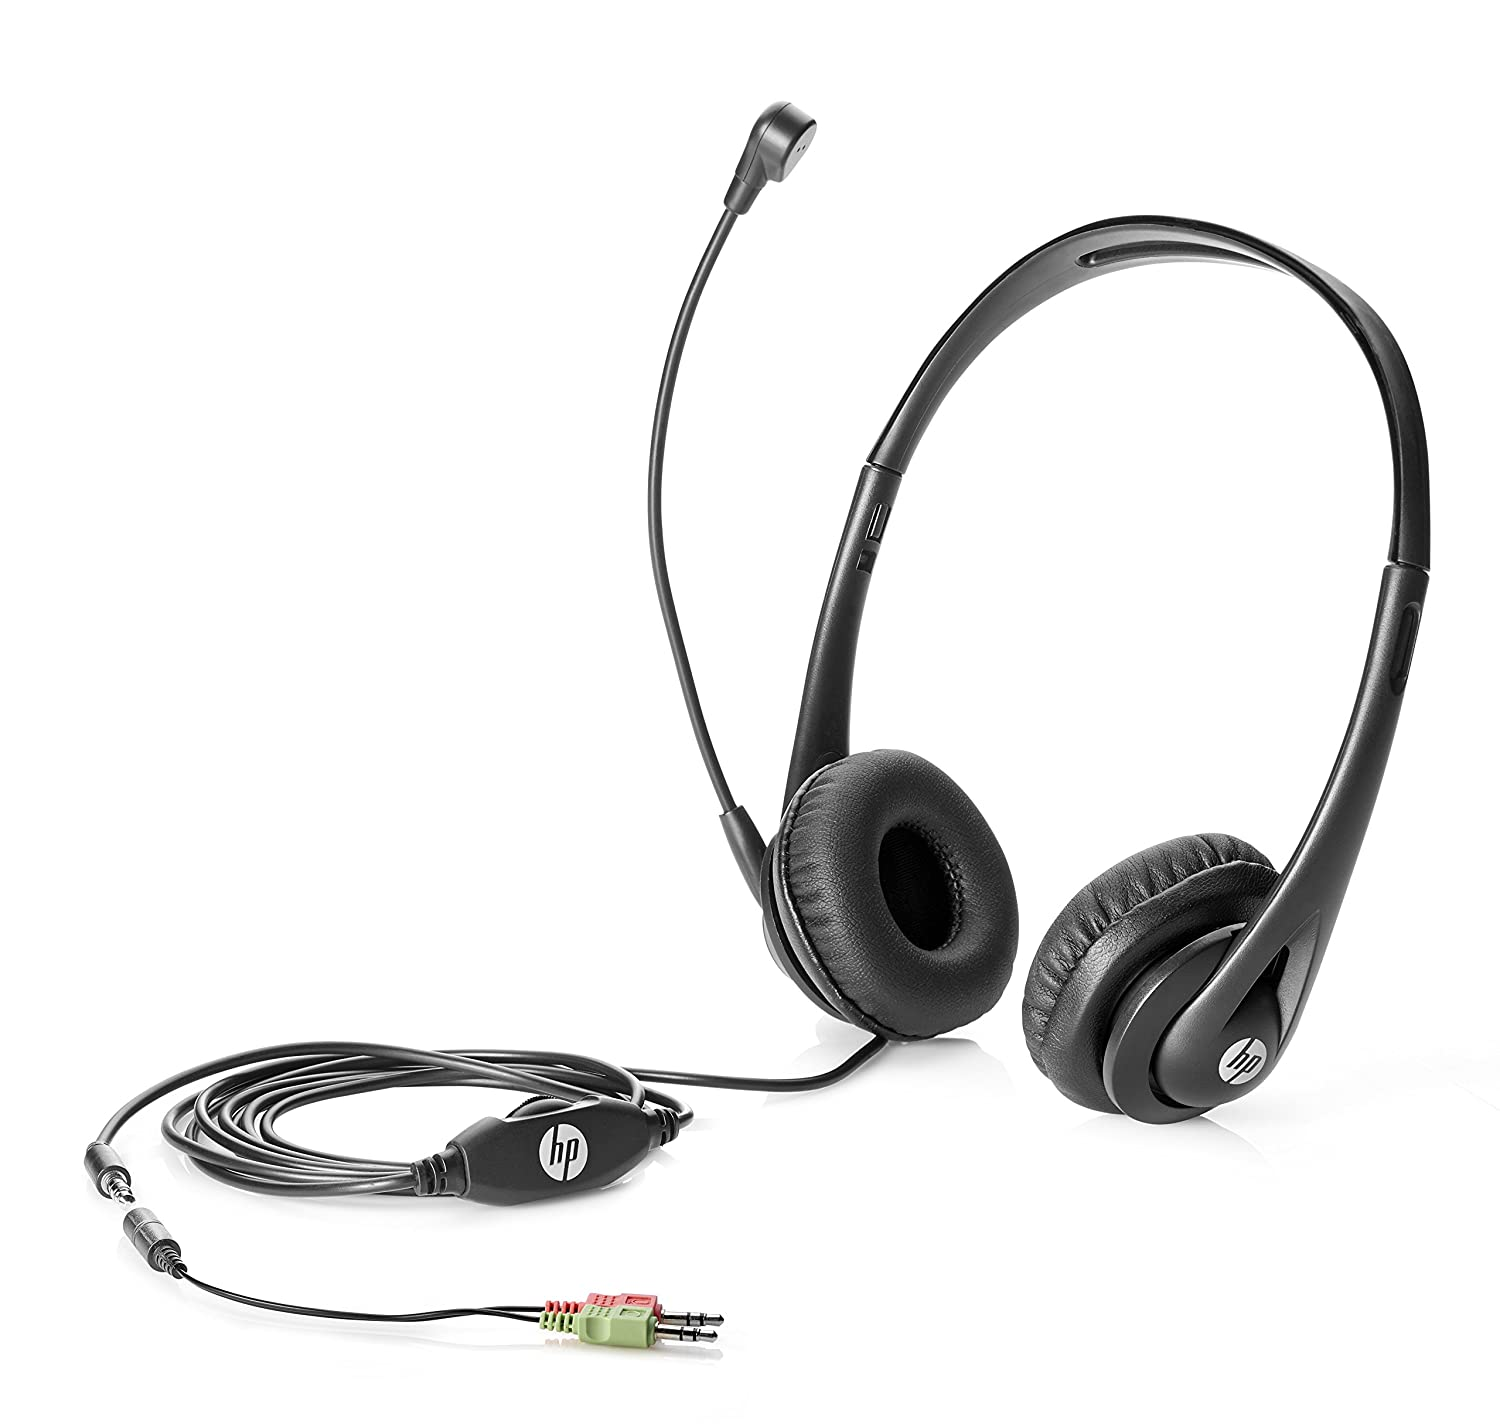 HP Business Headset v2 (T4E61AT)